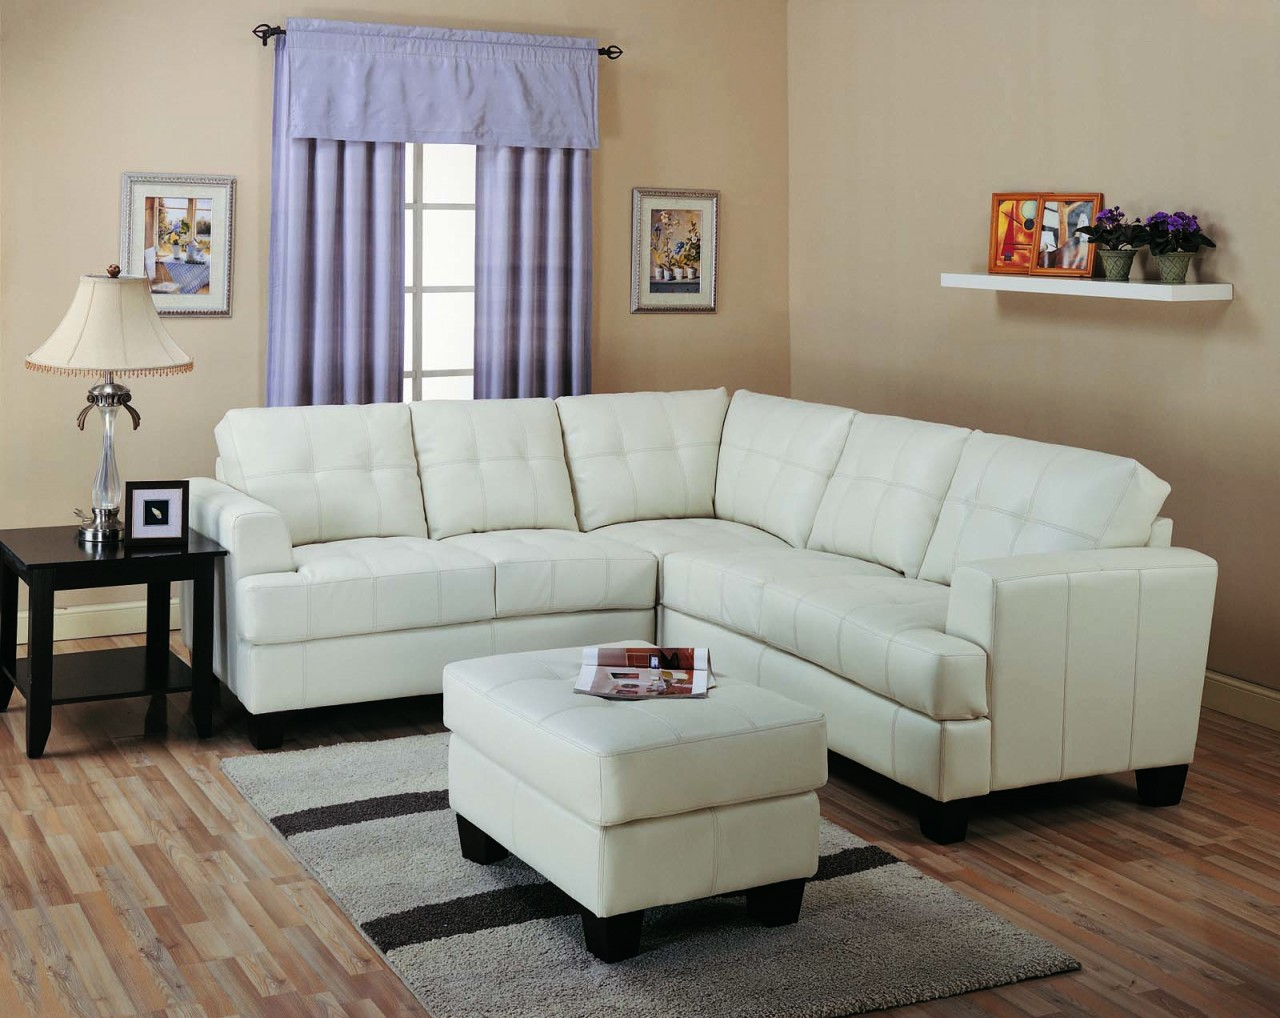 Types of best small sectional couches for small living Sofas for small living room